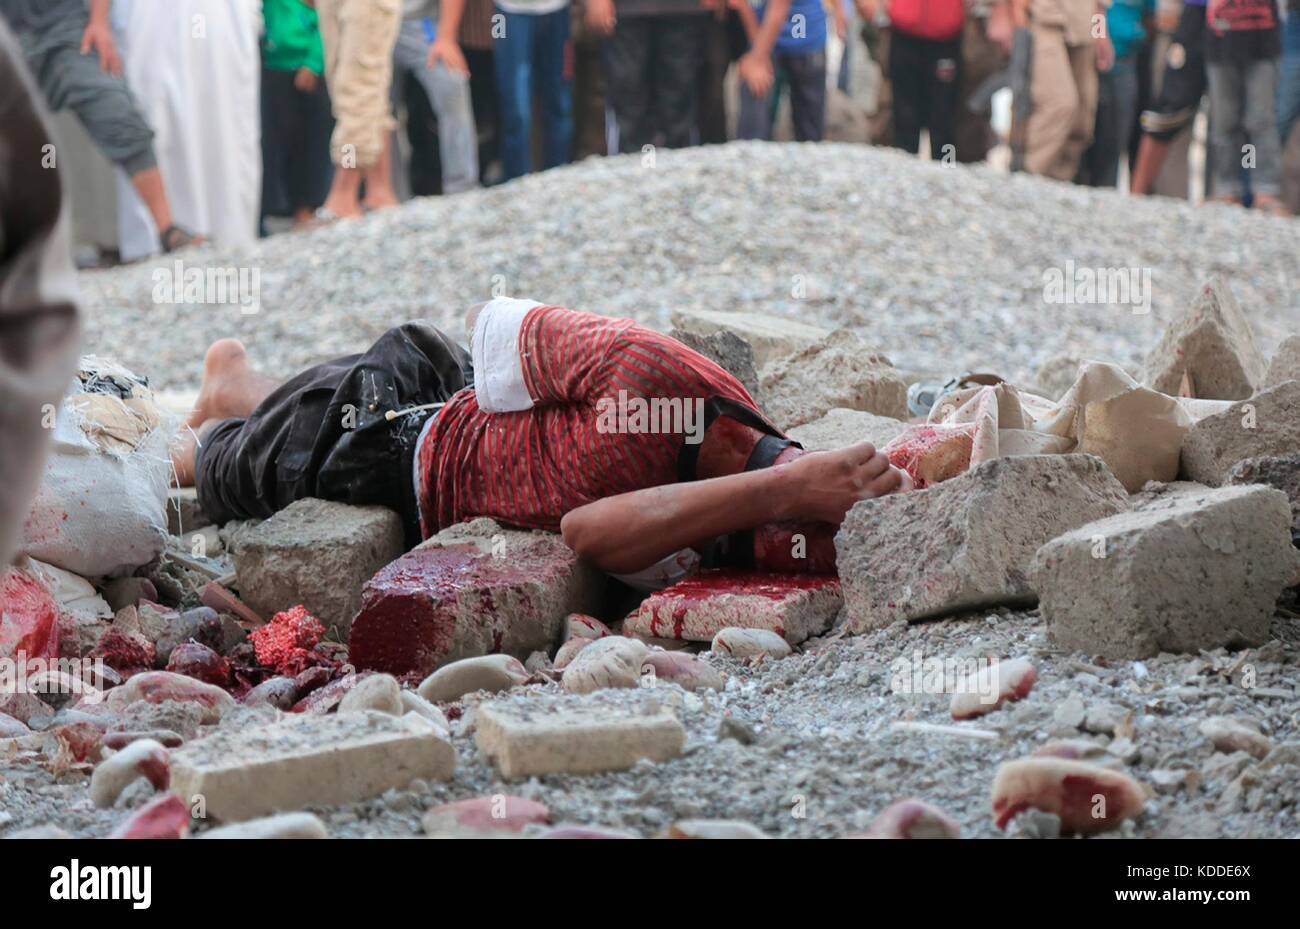 EDITORS NOTE: GRAPHIC CONTENT. Undated ISIS propaganda image showing a man killed by stoning for sodomy during a Stock Photo